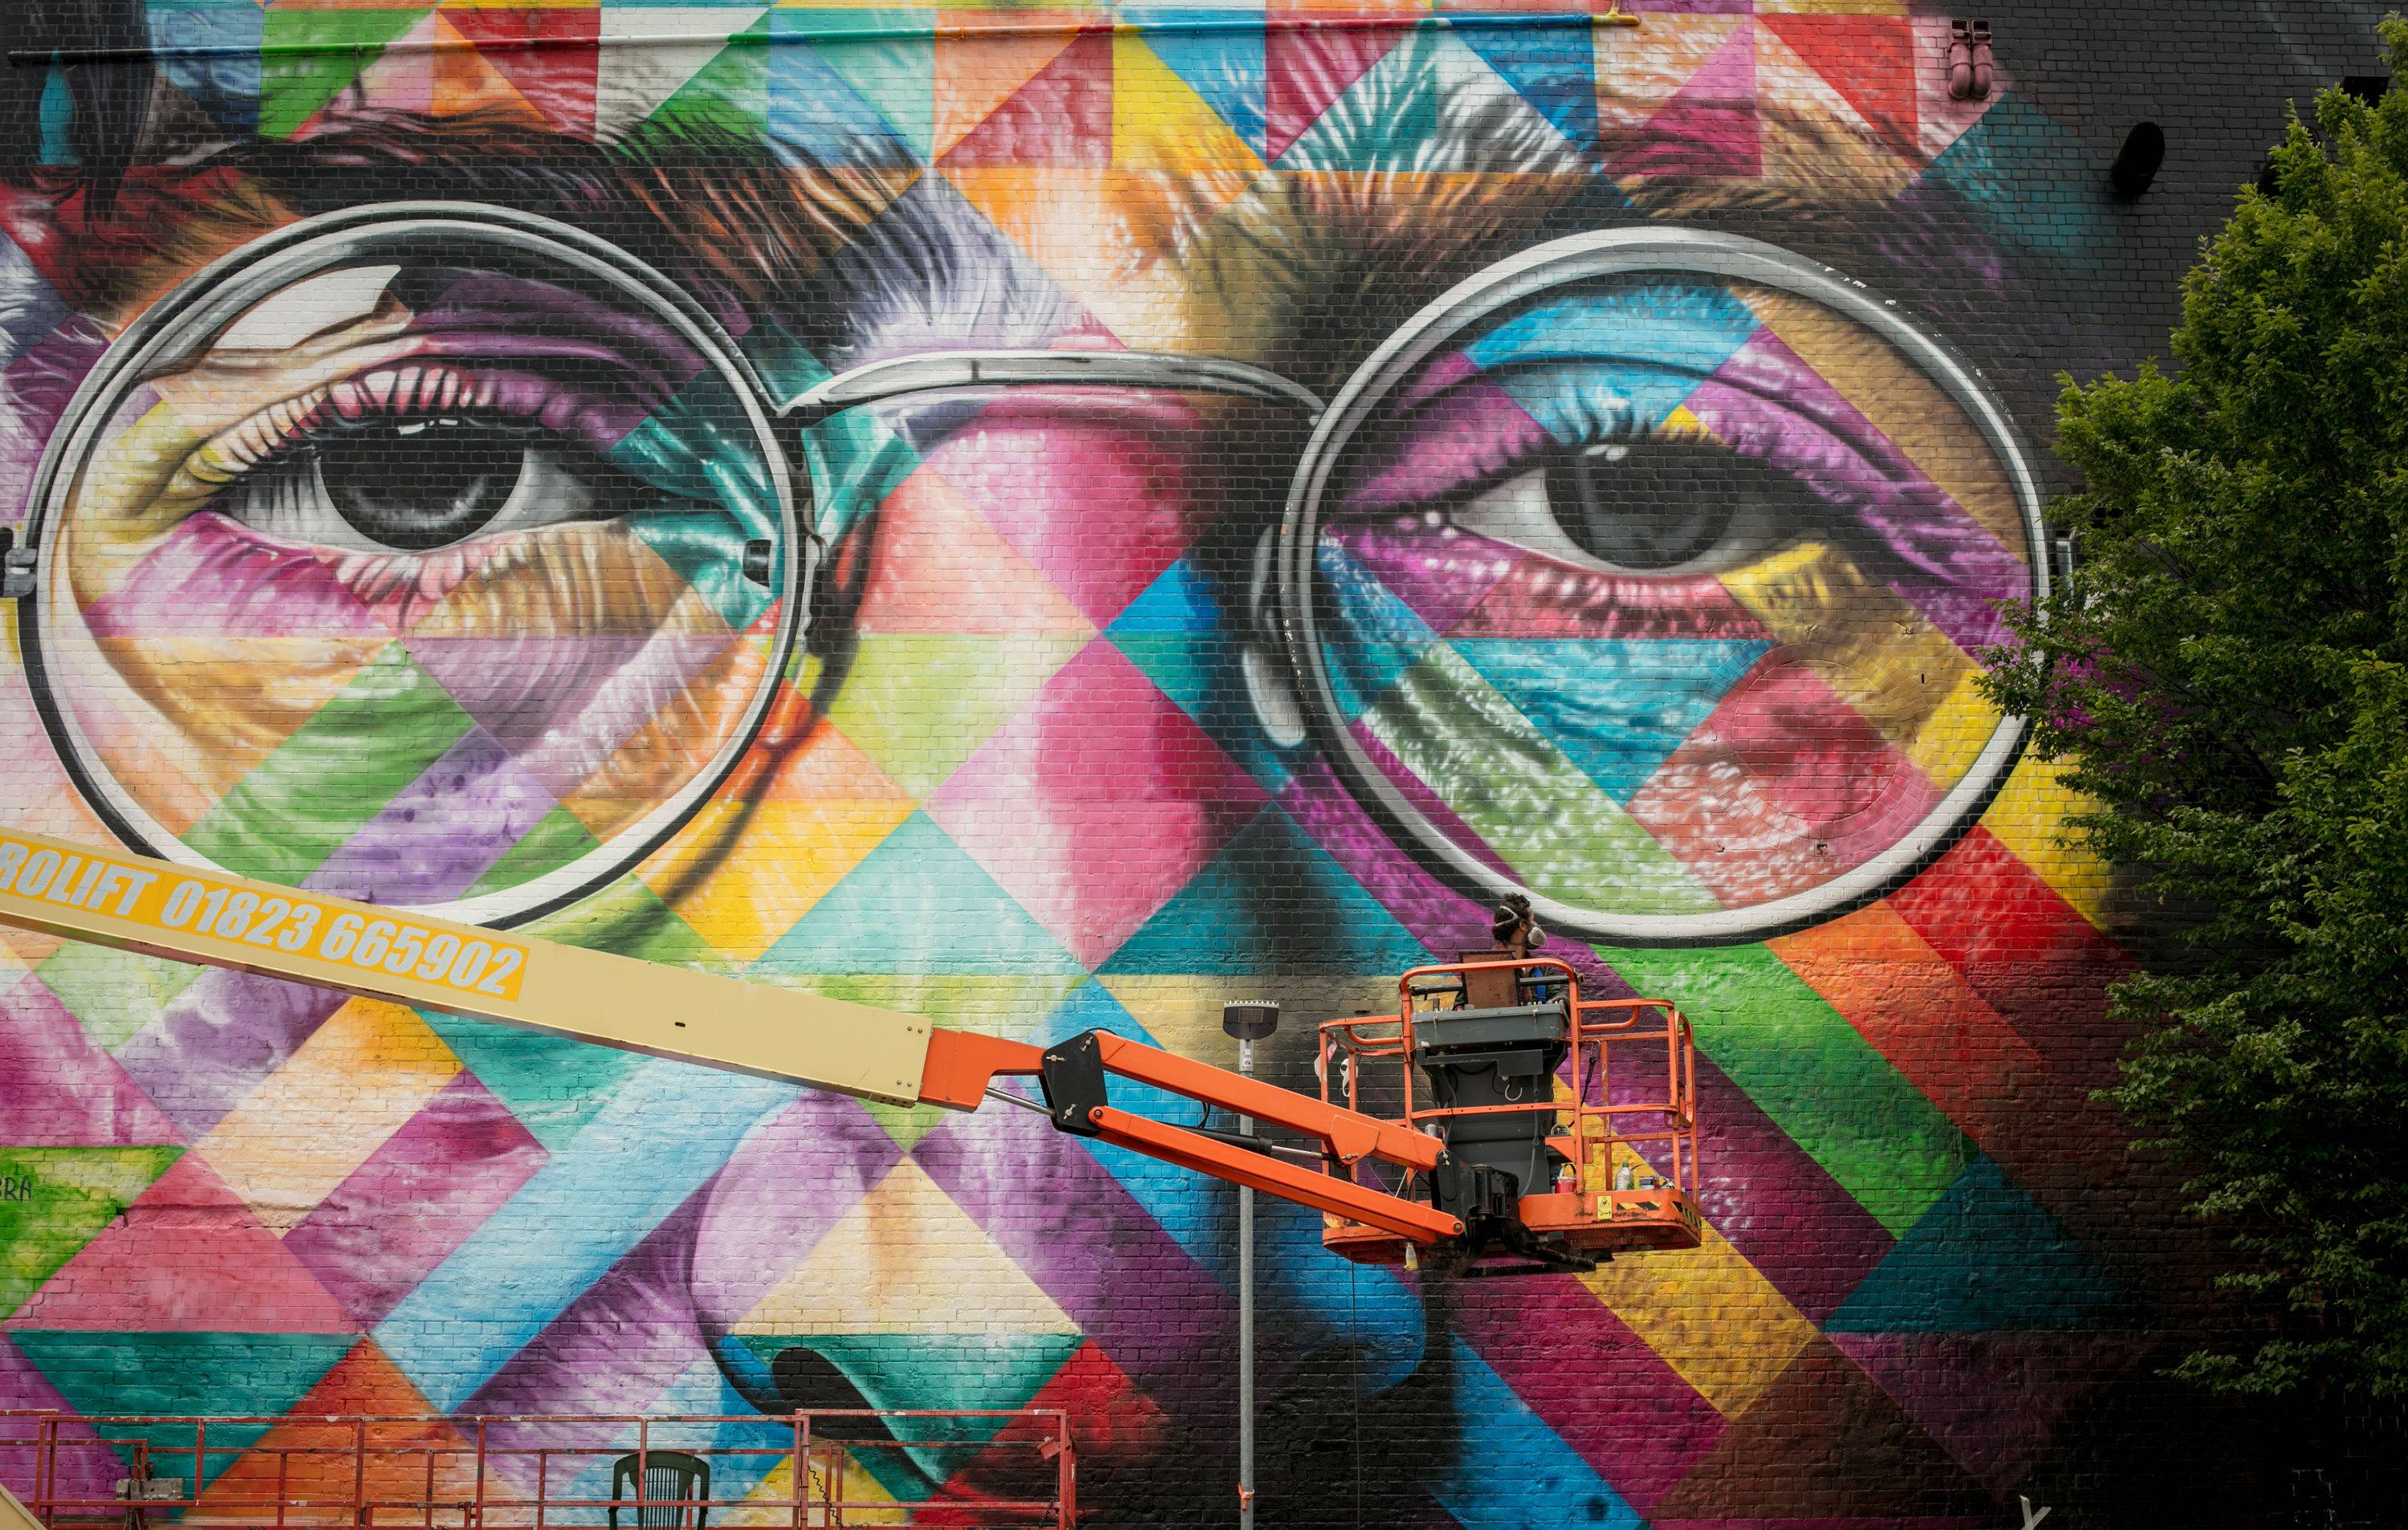 Upfest: Europe's largest Street Art & Graffiti festival